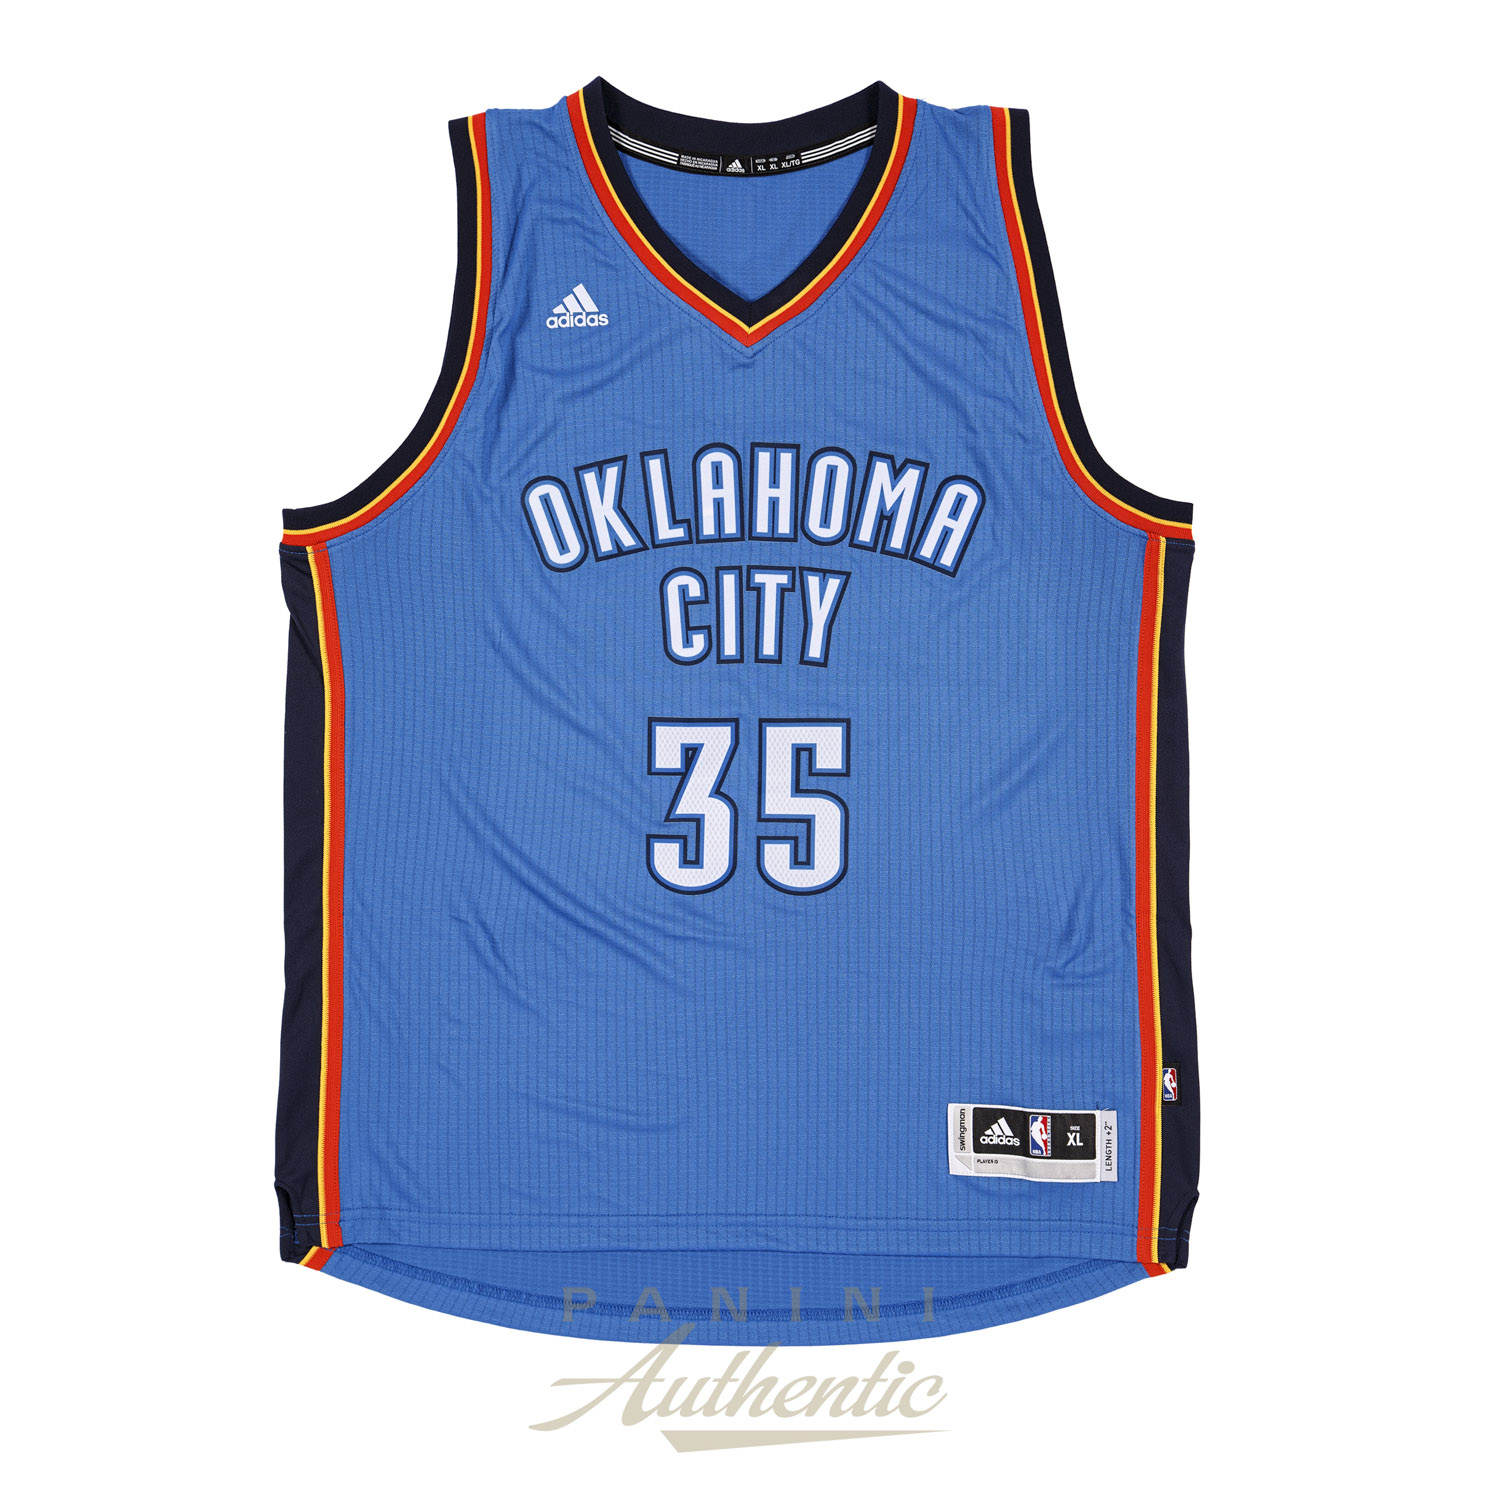 0818497e4 Kevin Durant Autographed Adidas Blue Thunder Swingman Jersey ~Open Edition  Item~. Hover to Zoom